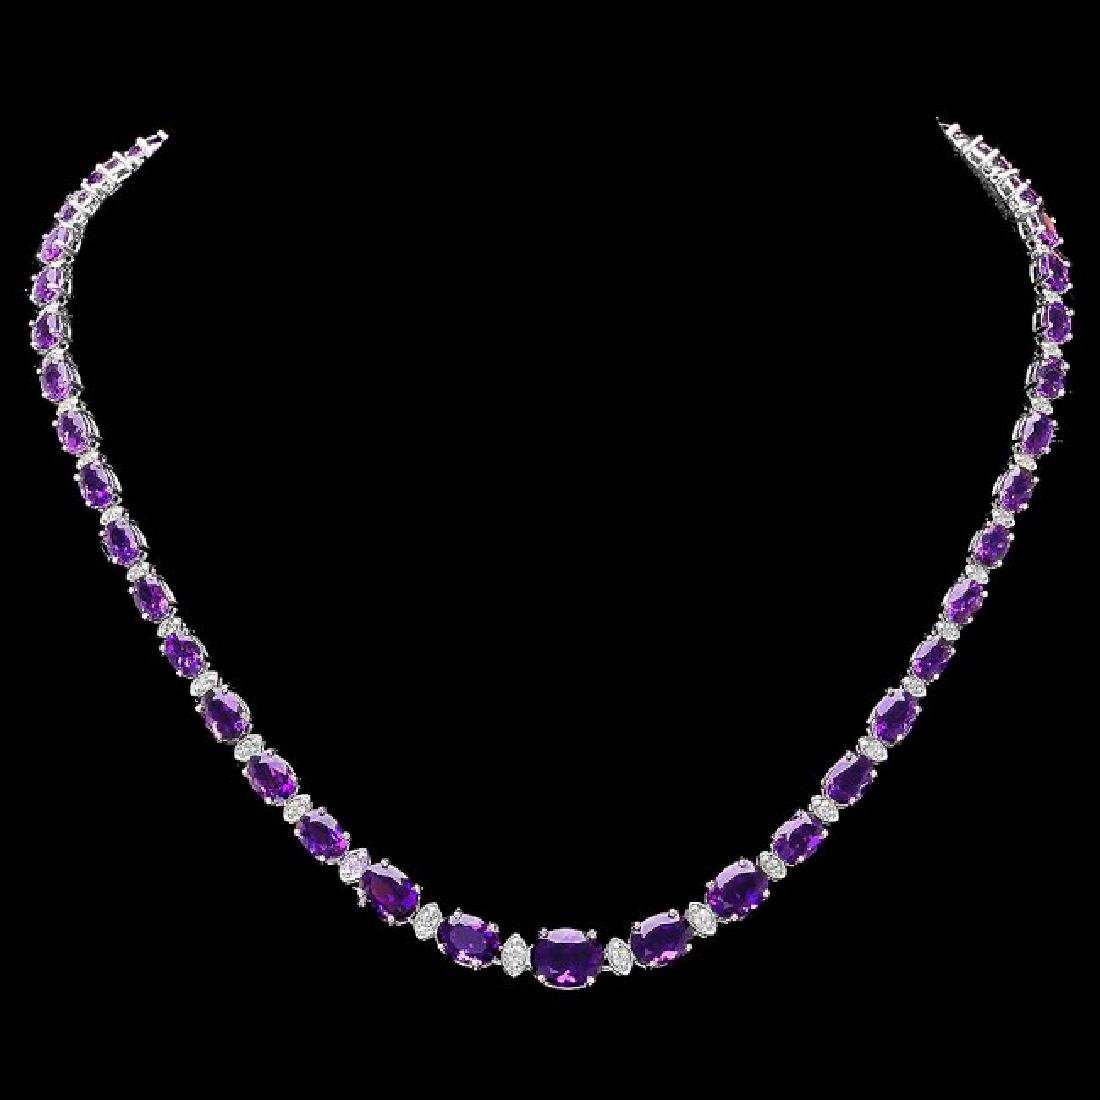 14k Gold 28.00ct Amethyst 1.40ct Diamond Necklace